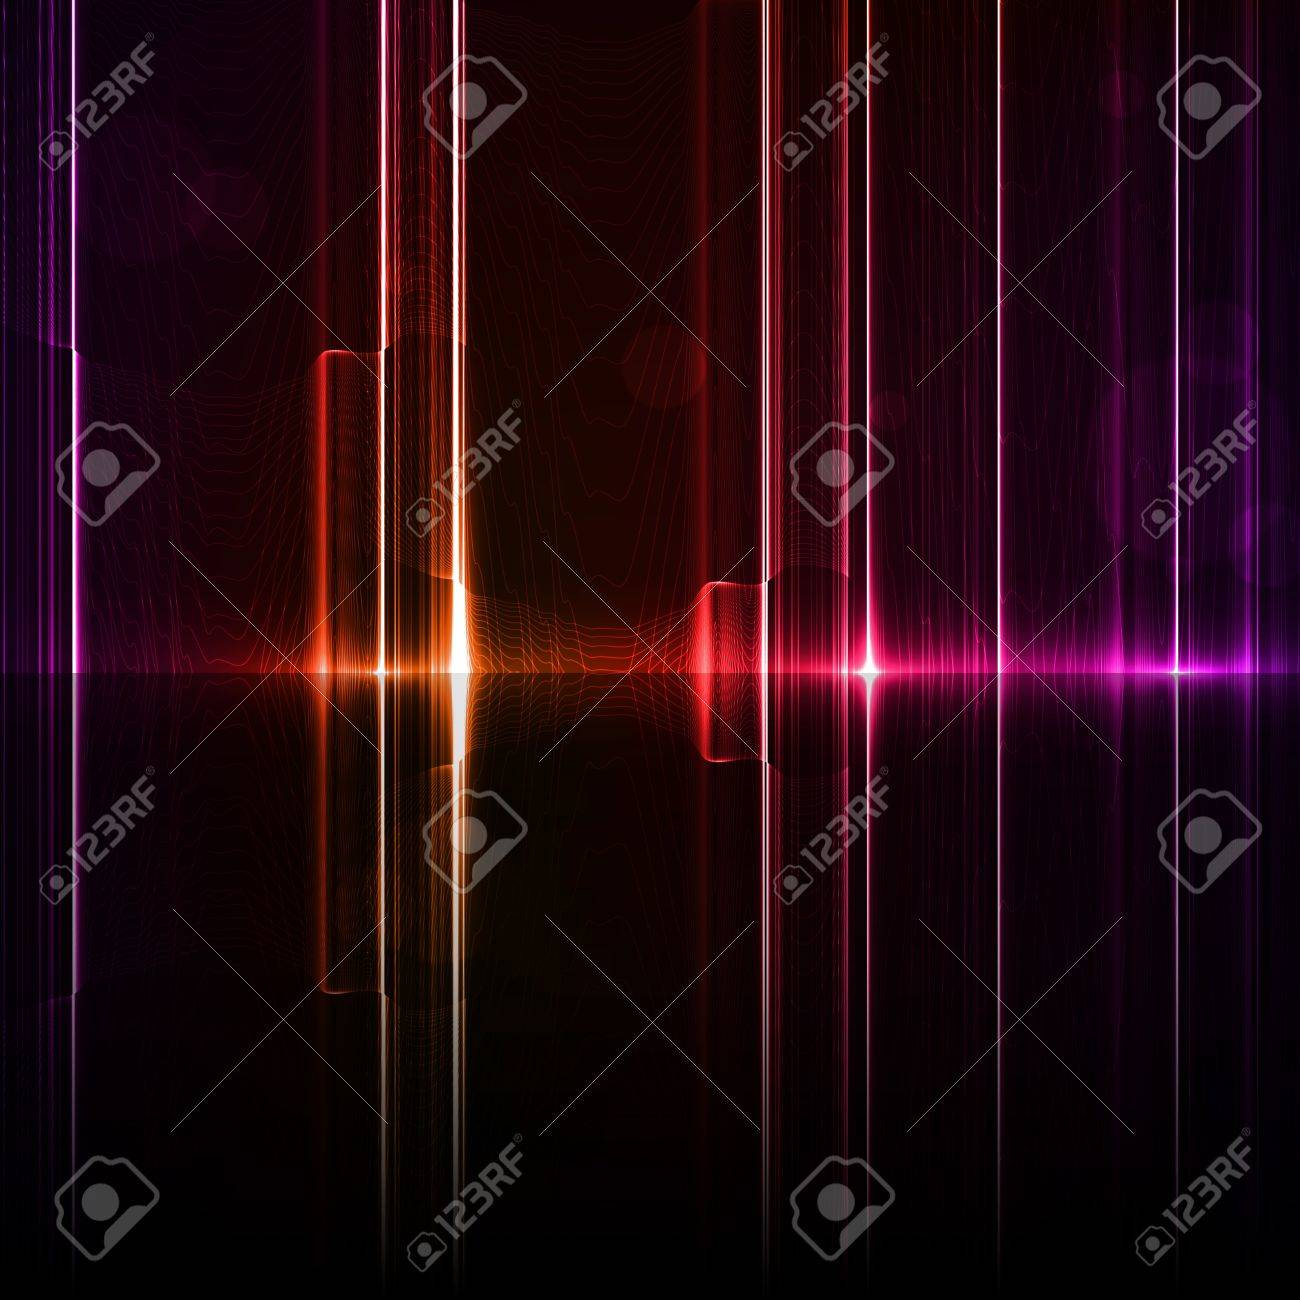 Technology template. Neon abstract, reflection lines backgrounds Stock Photo - 13572111